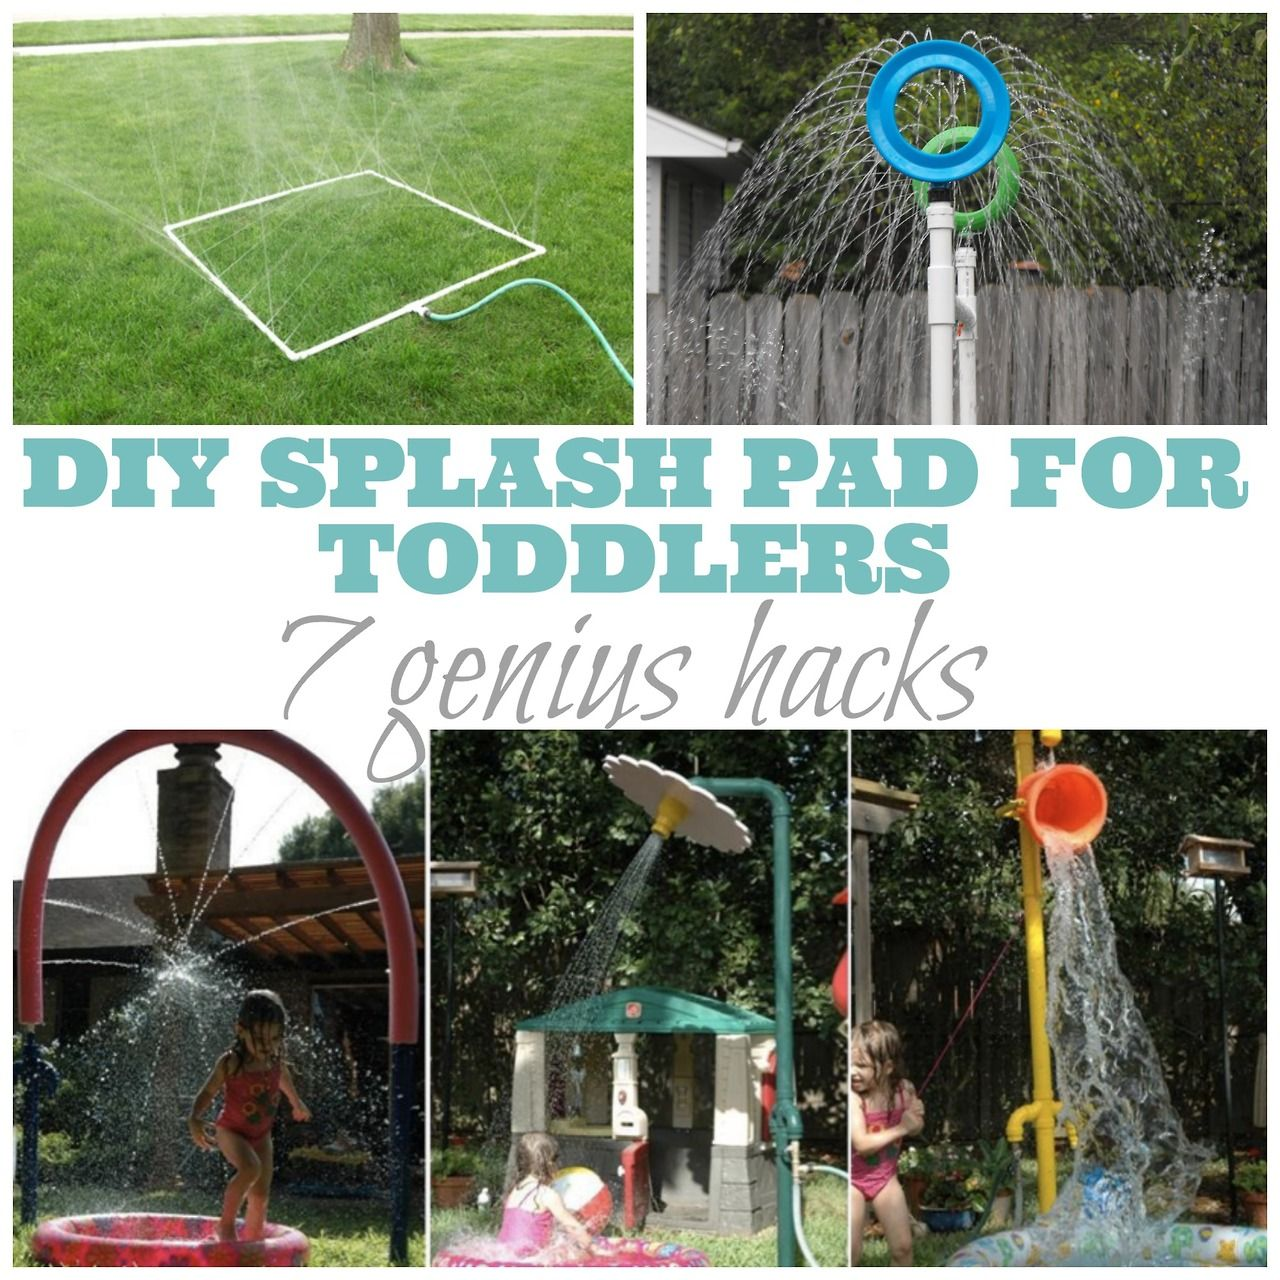 Diy Splash Pad For Toddlers 7 Genius Hacks I Love This Have Always Wanted To Make Our Own In Back Yard These Are Some Great